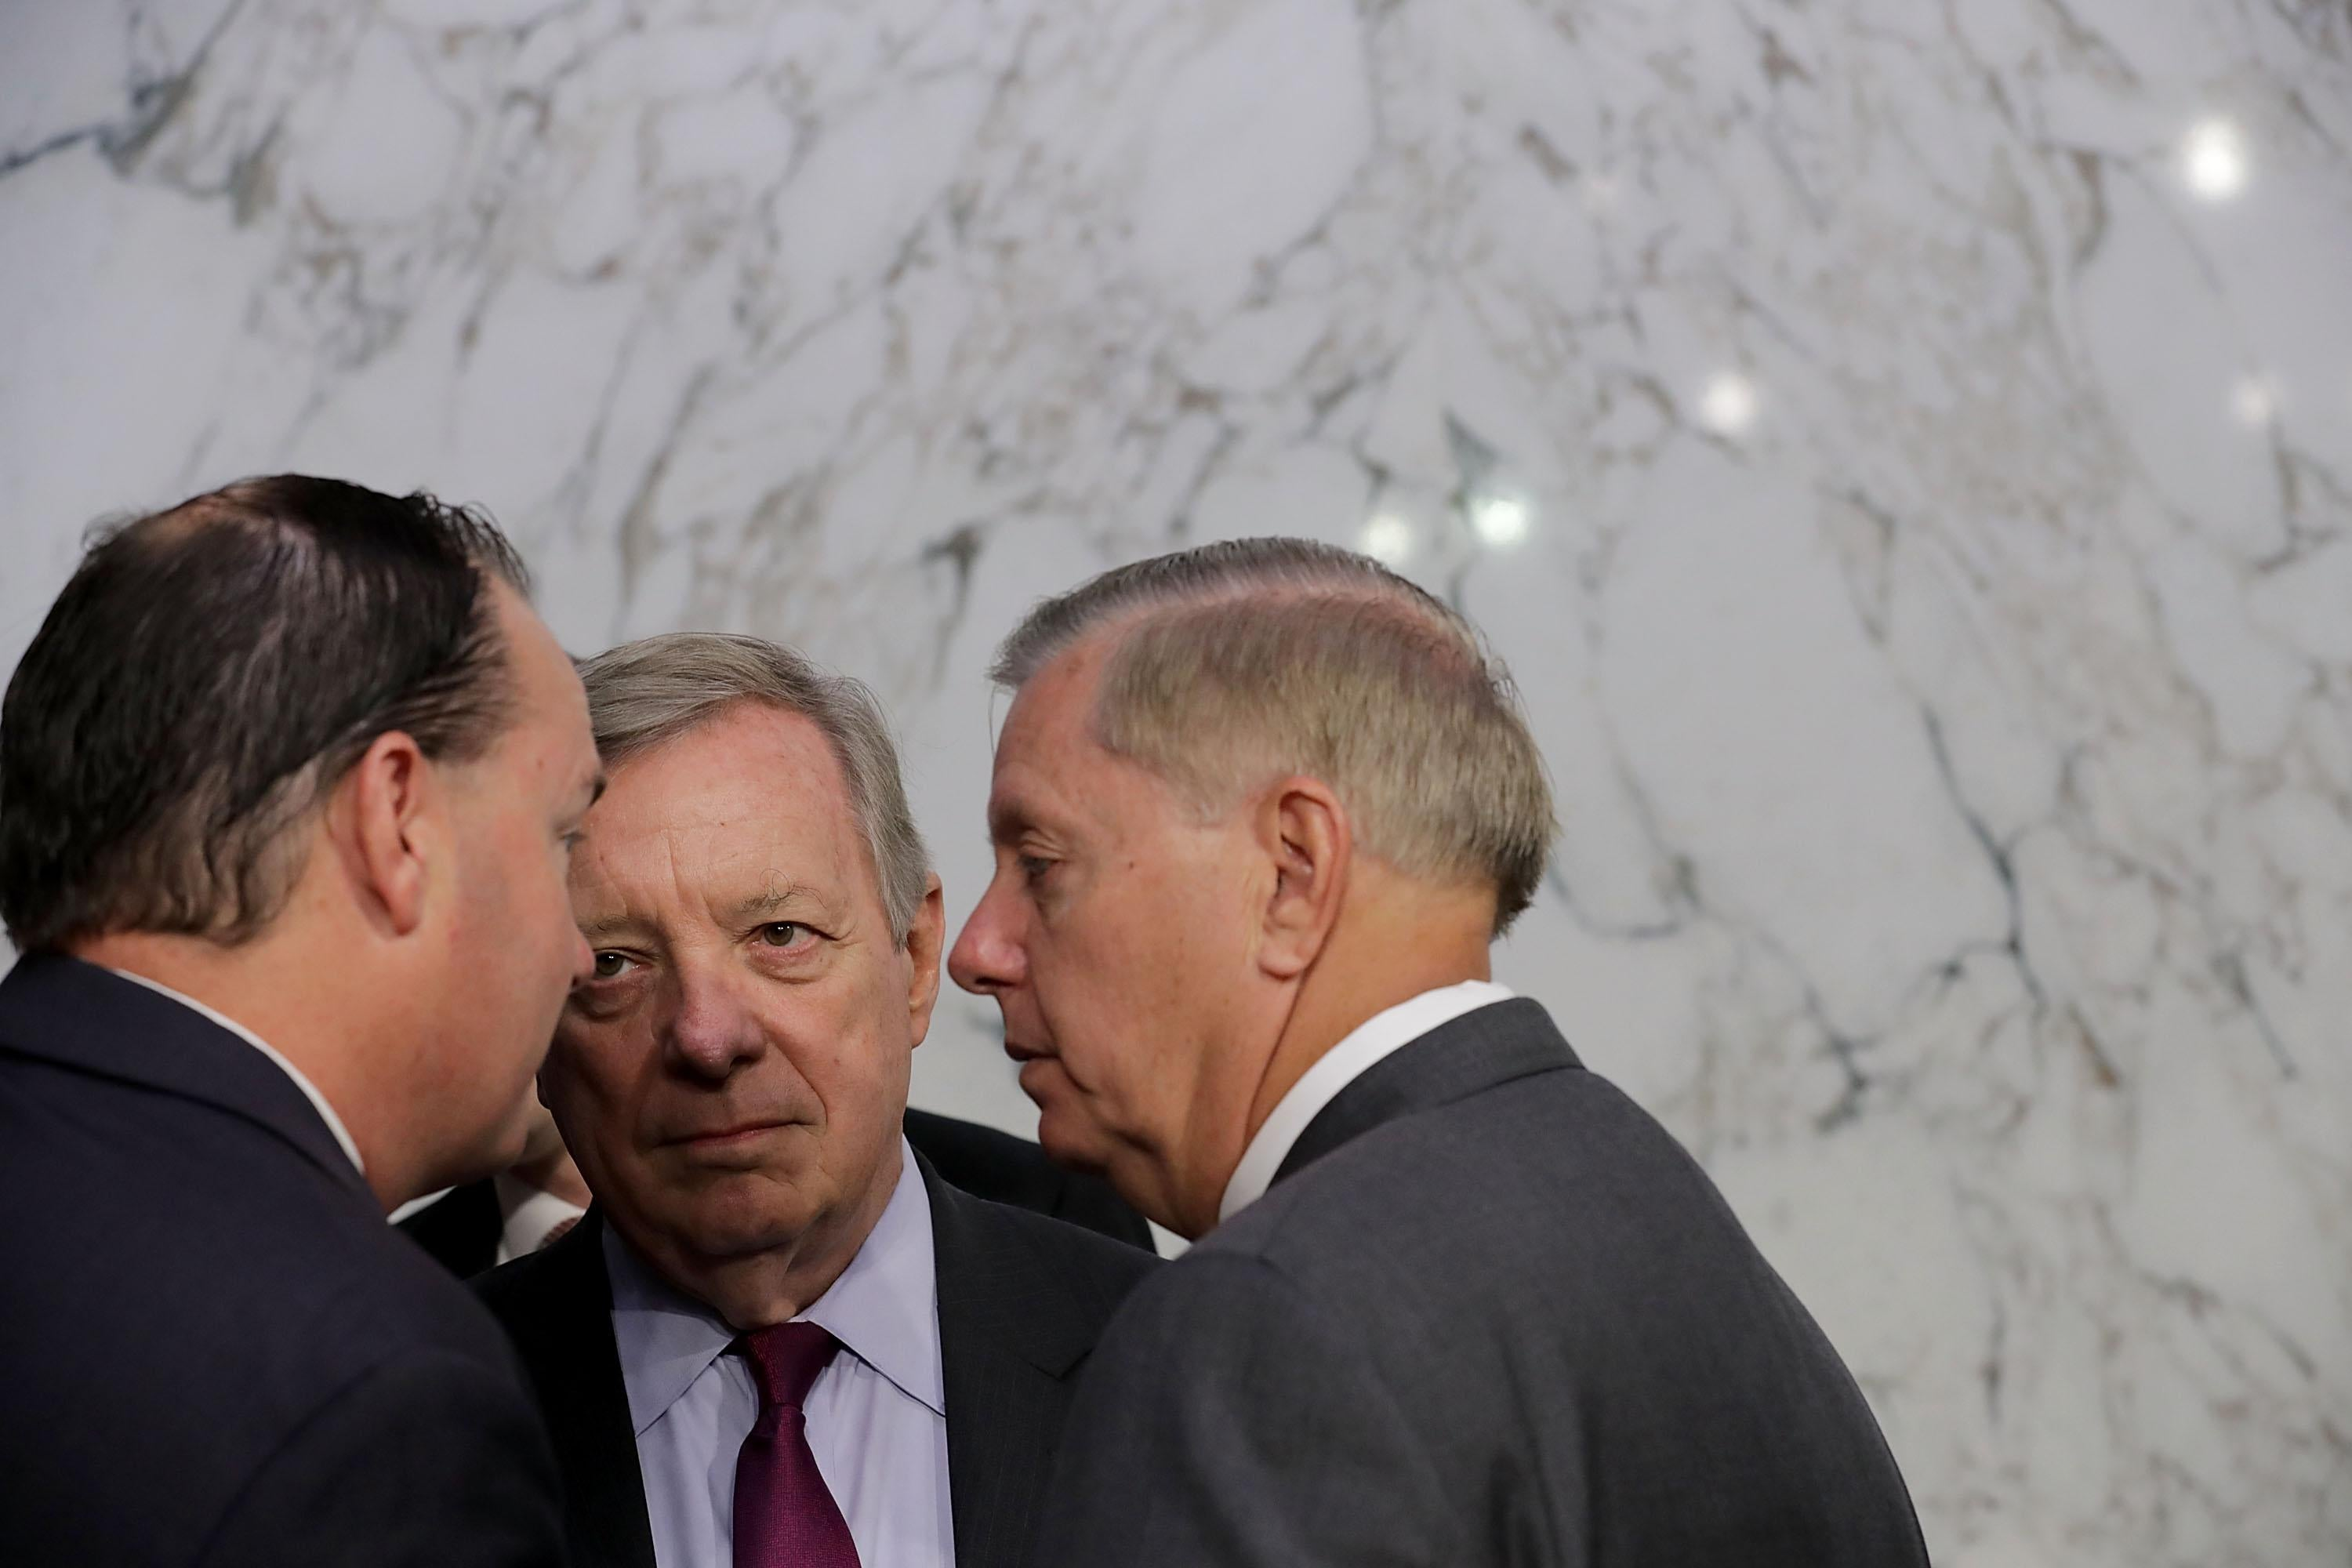 Lee, Durbin, and Graham in a close huddle.